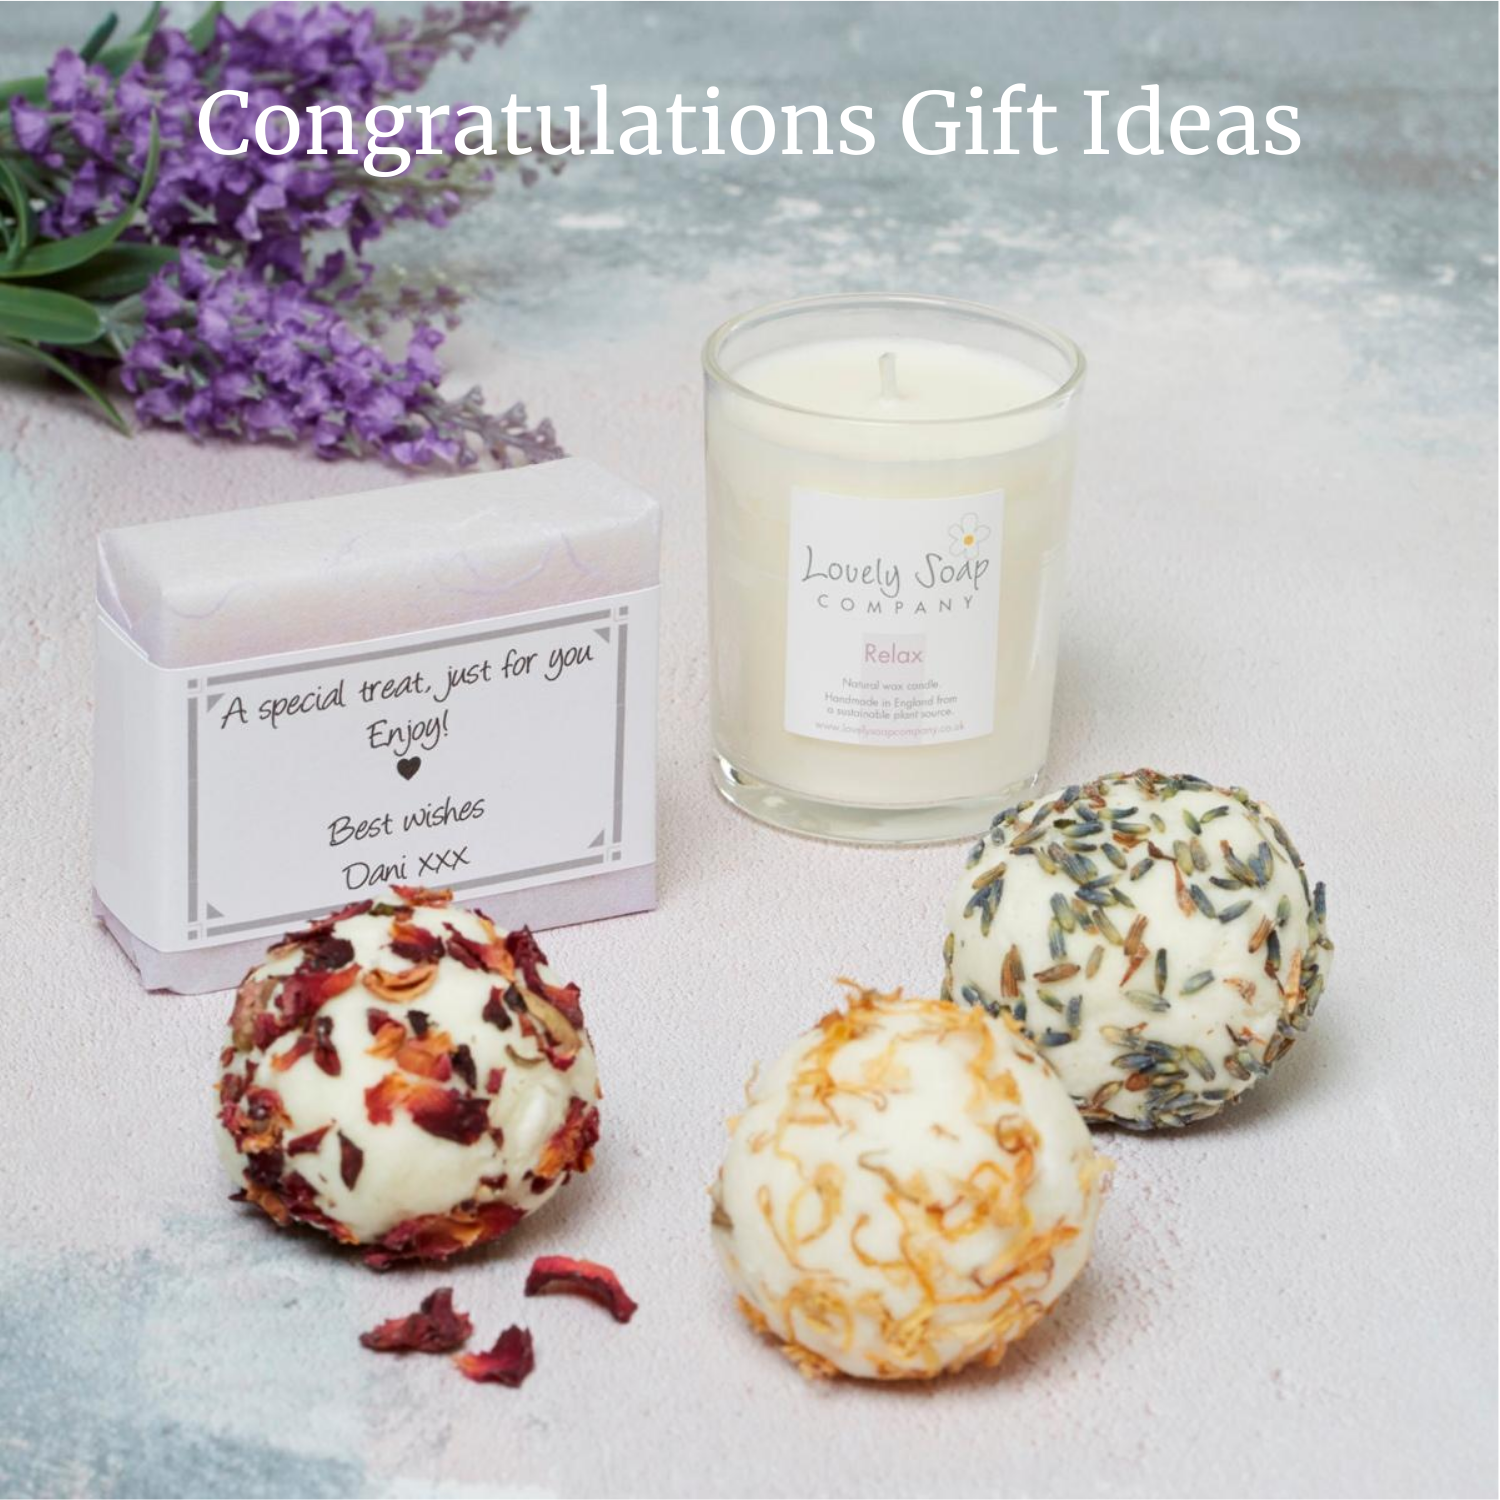 congratulations gift ideas exam pass gifts Lovely Soap CoLovely Soap Co